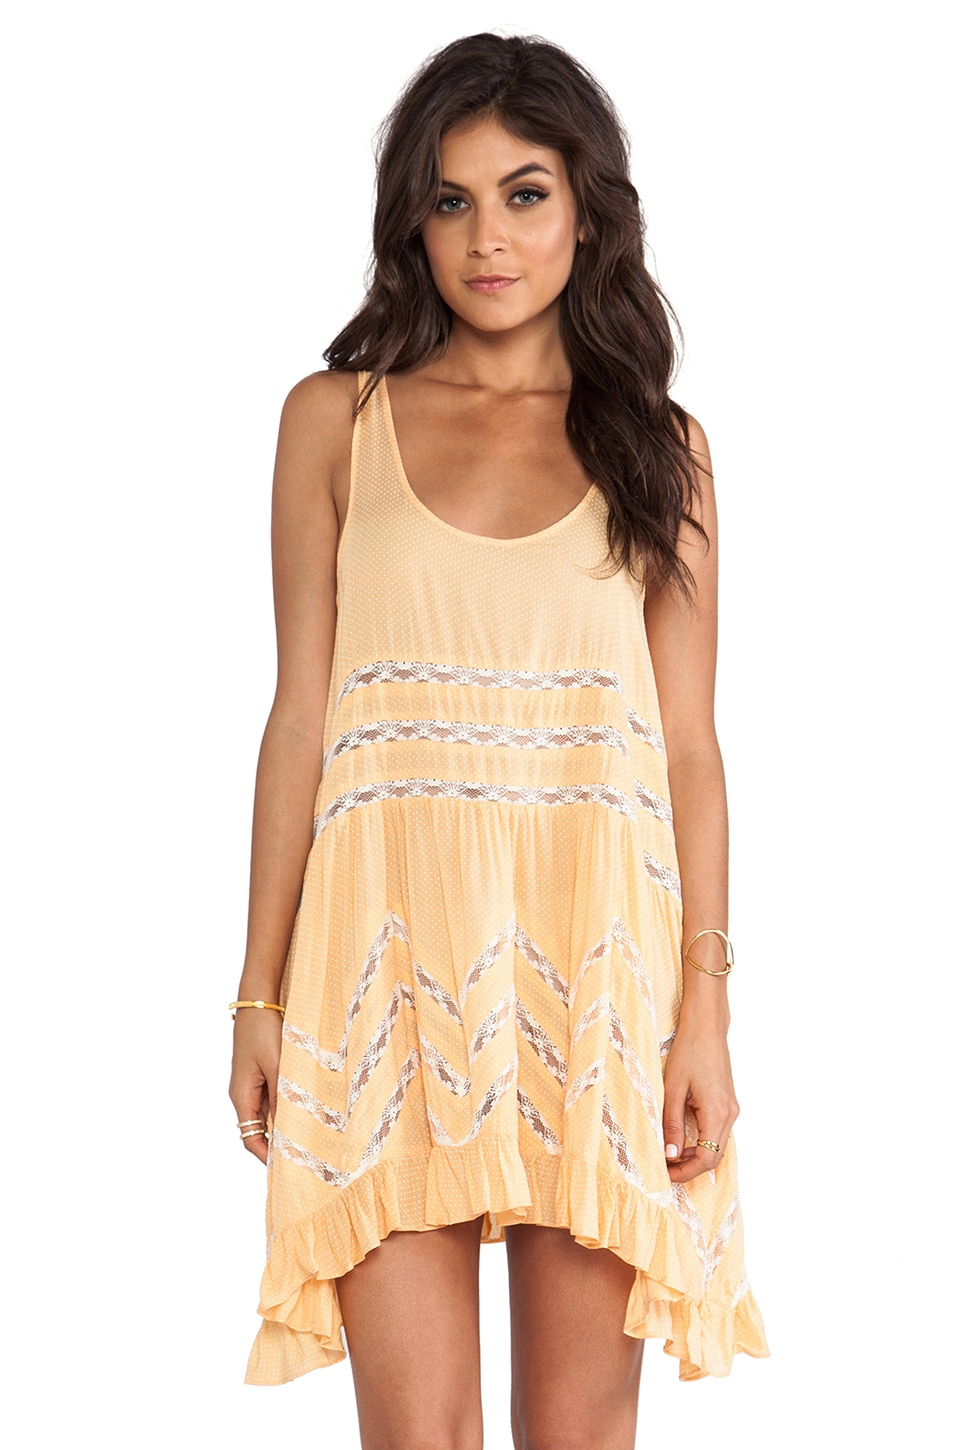 Free People Voile & Lace Trapeze Dress in Tangerine